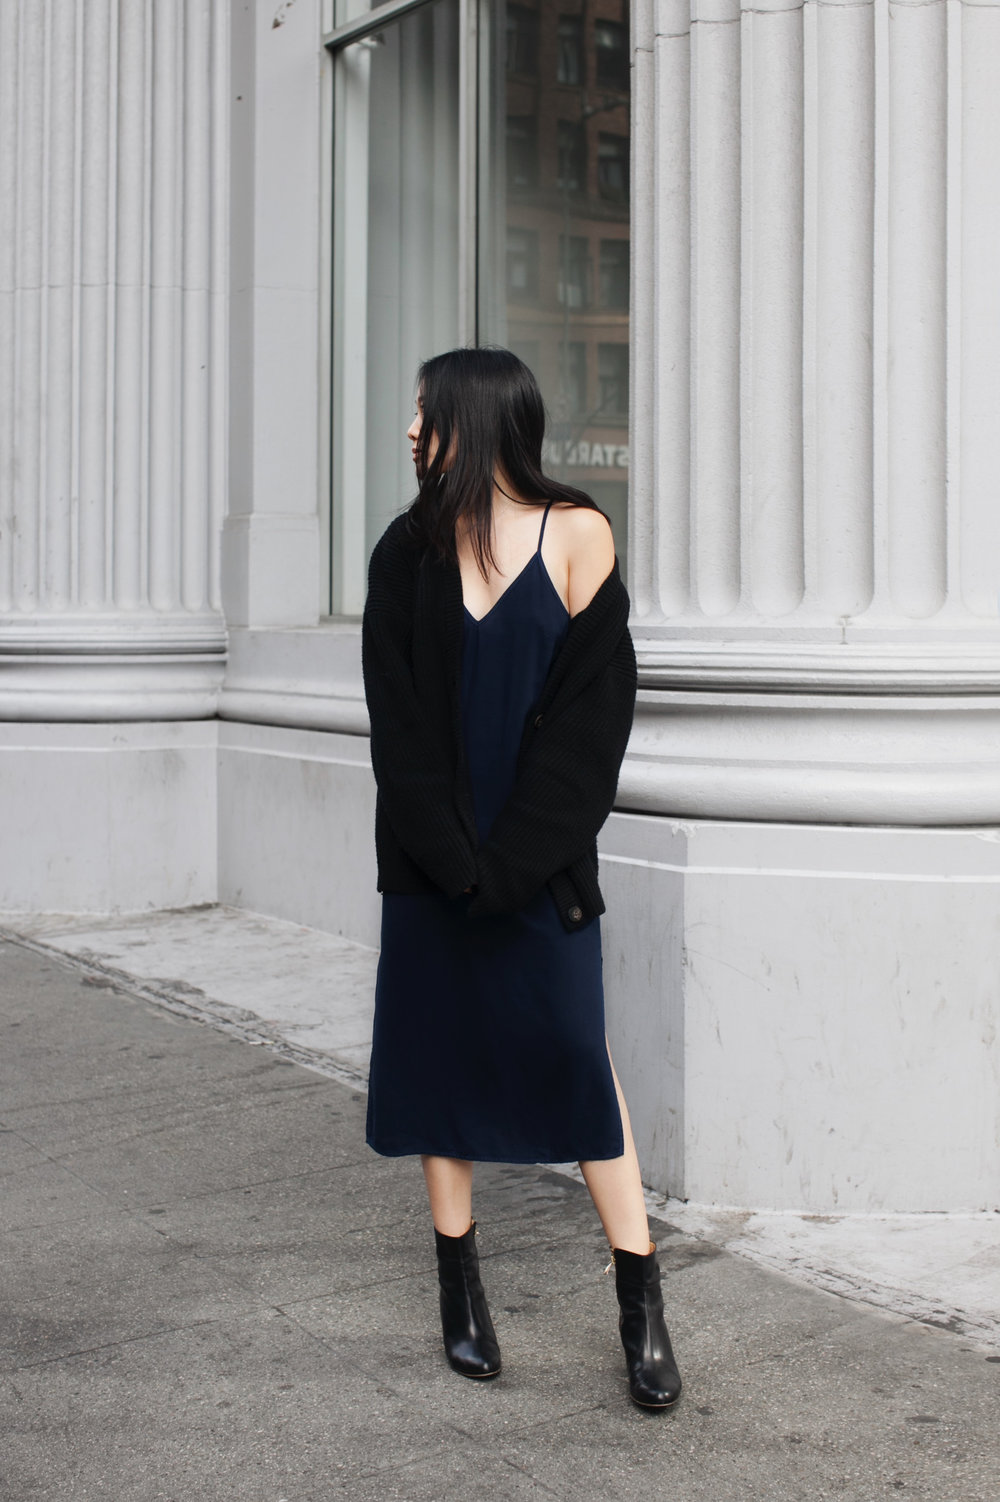 H&M TREND Sweater / SPLENDID Slip Dress / ATP ATELIER Boots